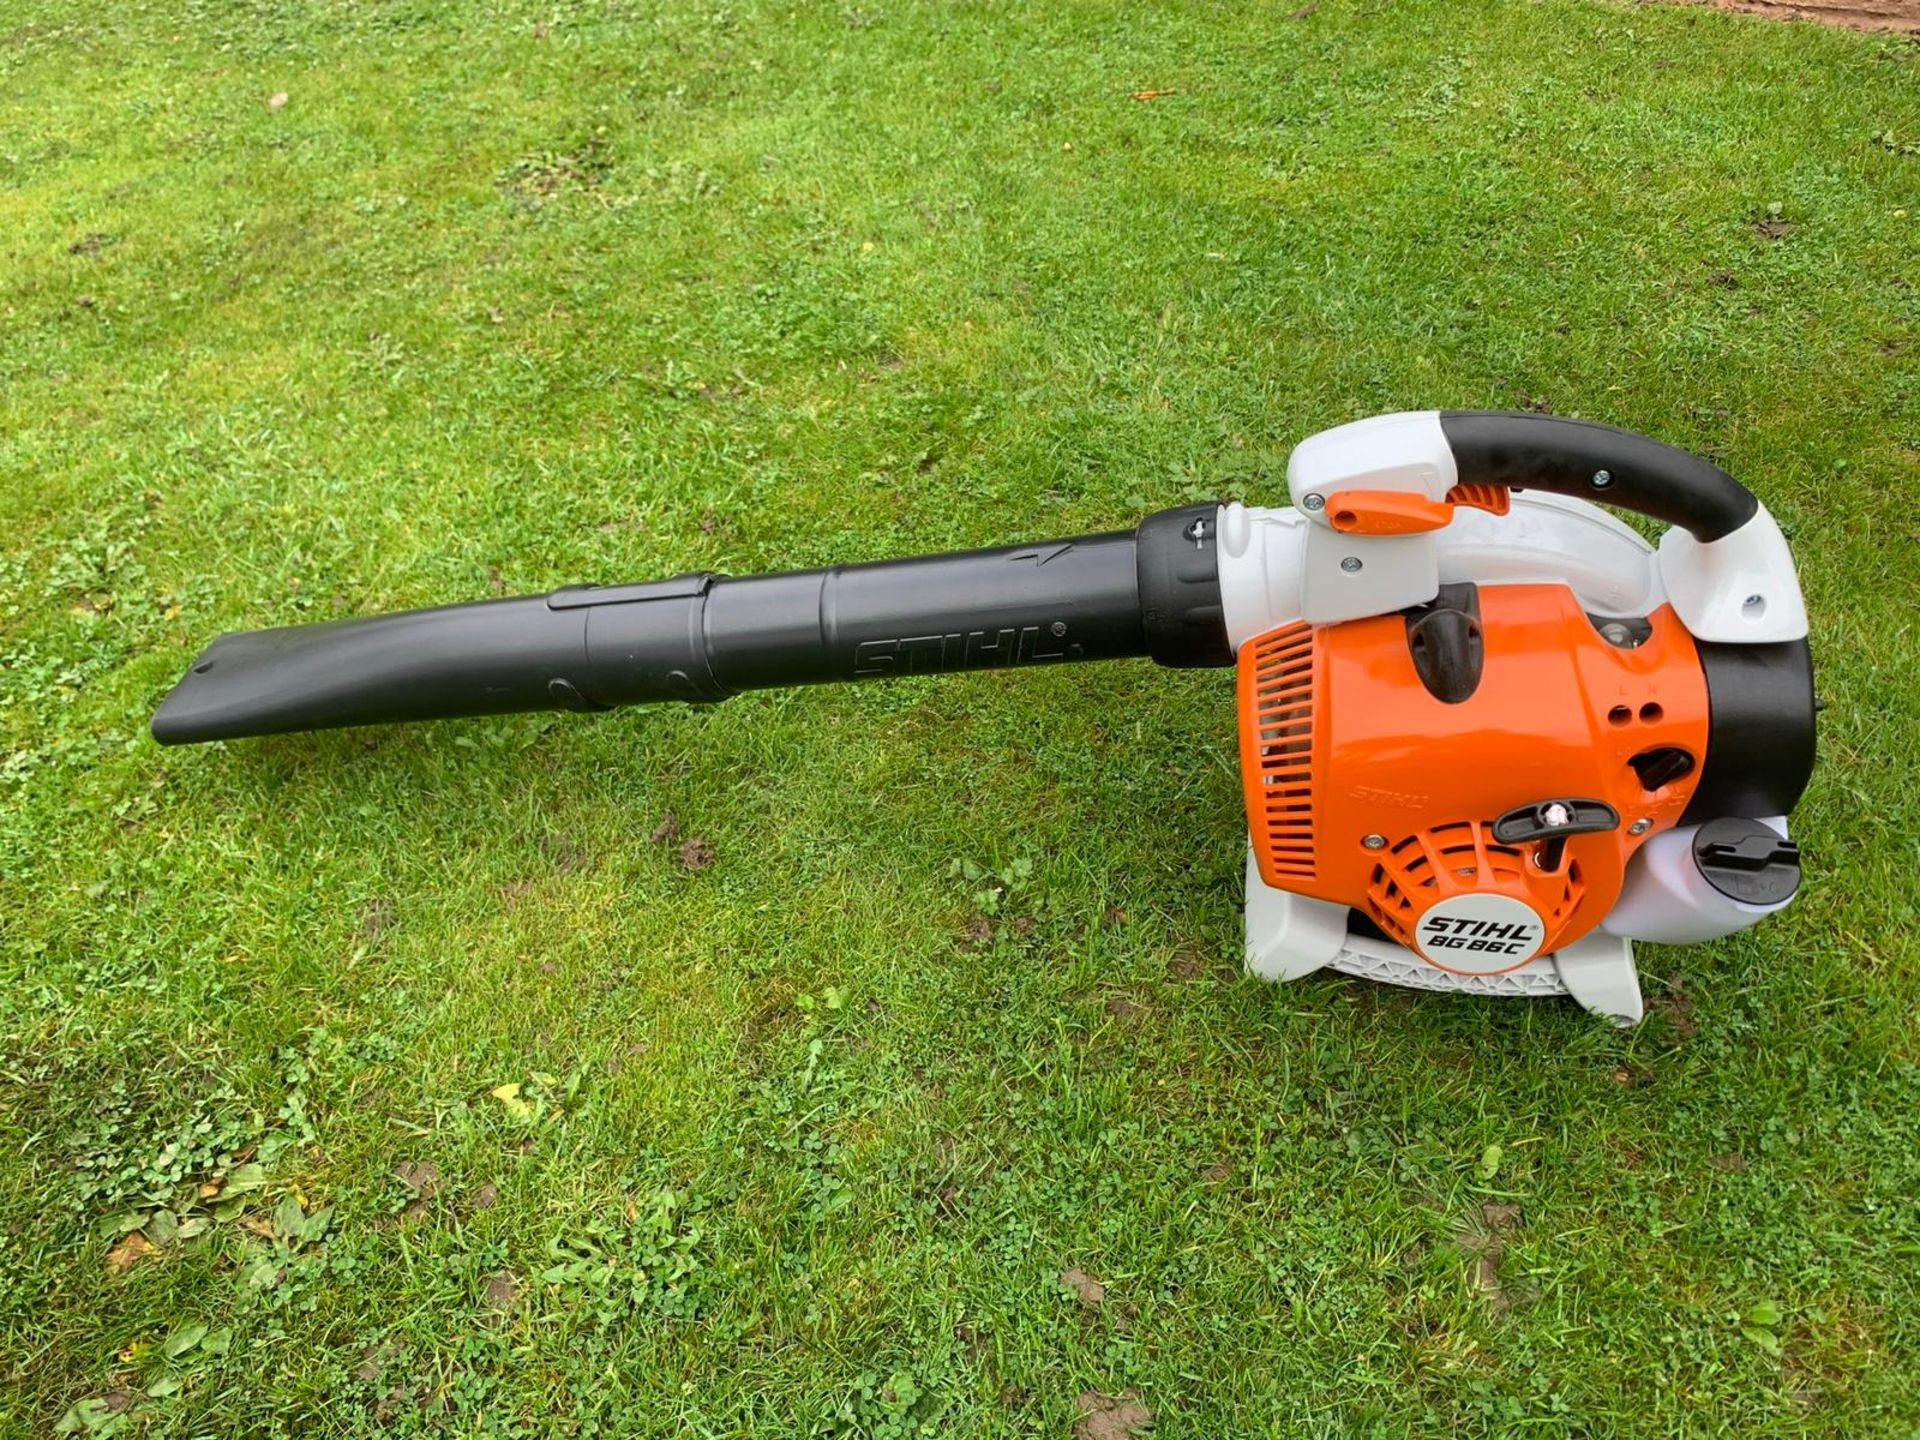 BRAND NEW AND UNUSED STIHL BG86C-3 LEAF BLOWER, C/W MANUAL AND PIPES (BOXED) *NO VAT* - Image 3 of 3